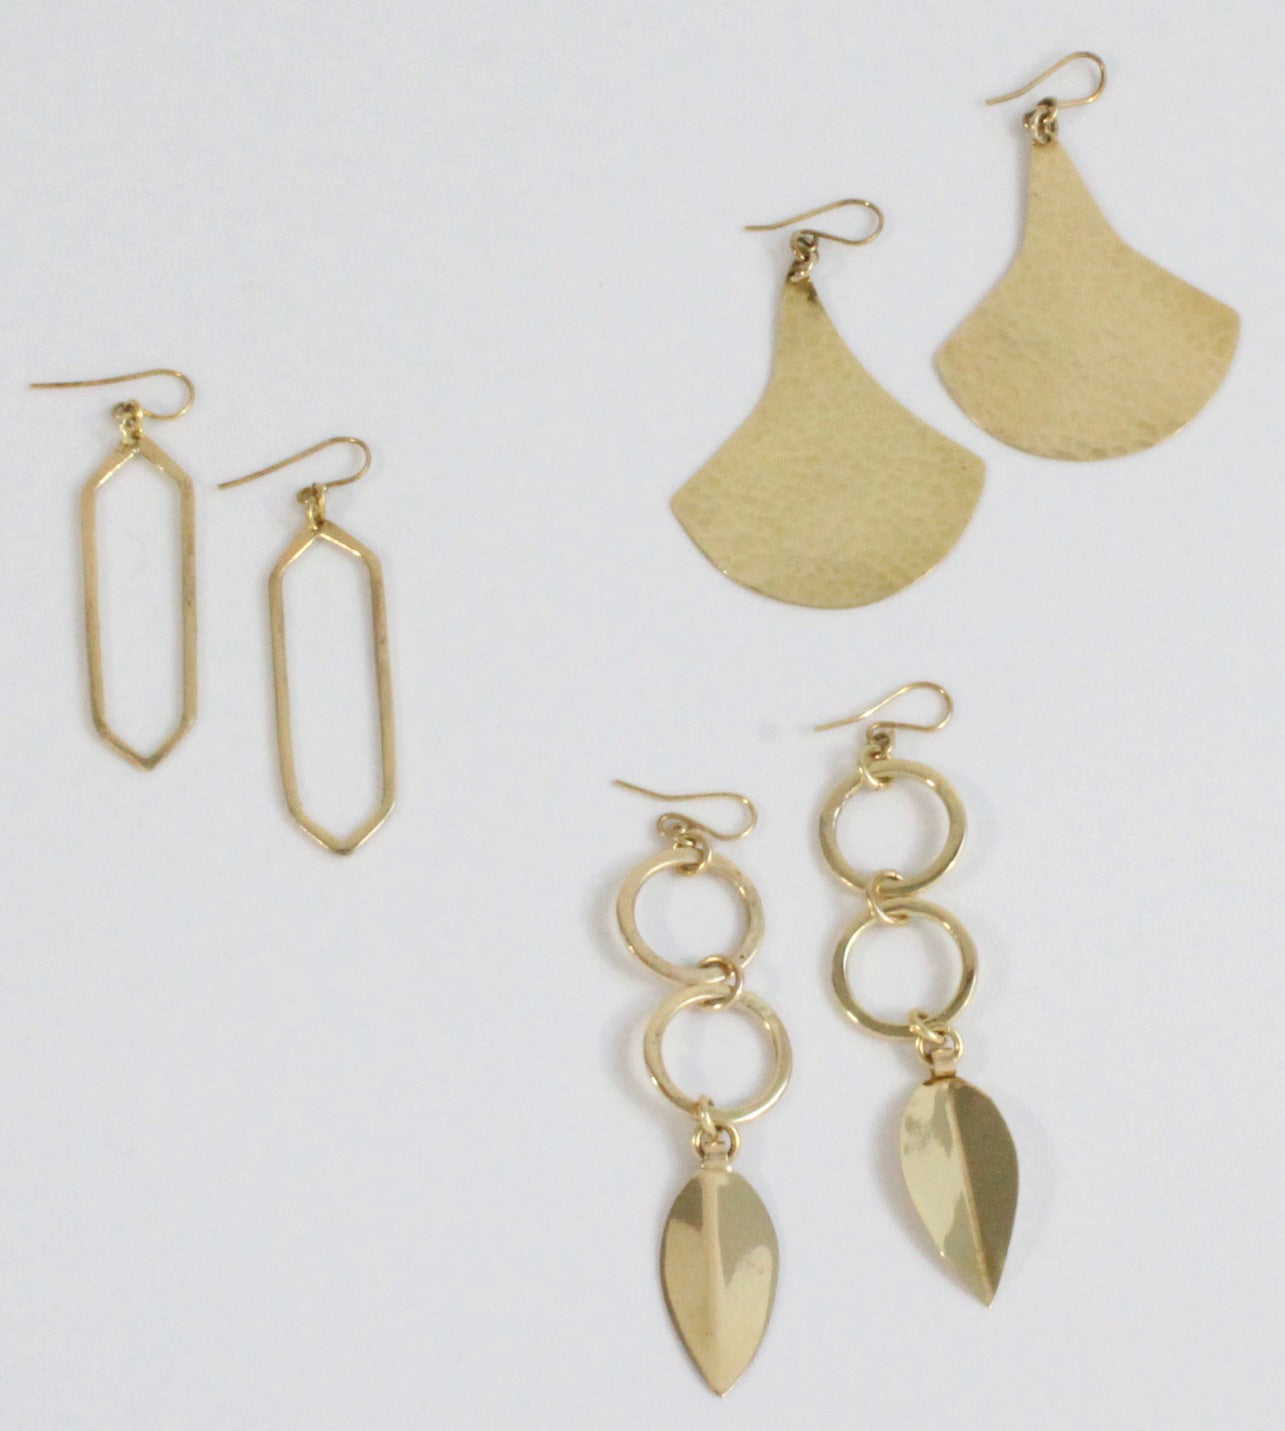 3 pairs of African handmade brass earrings